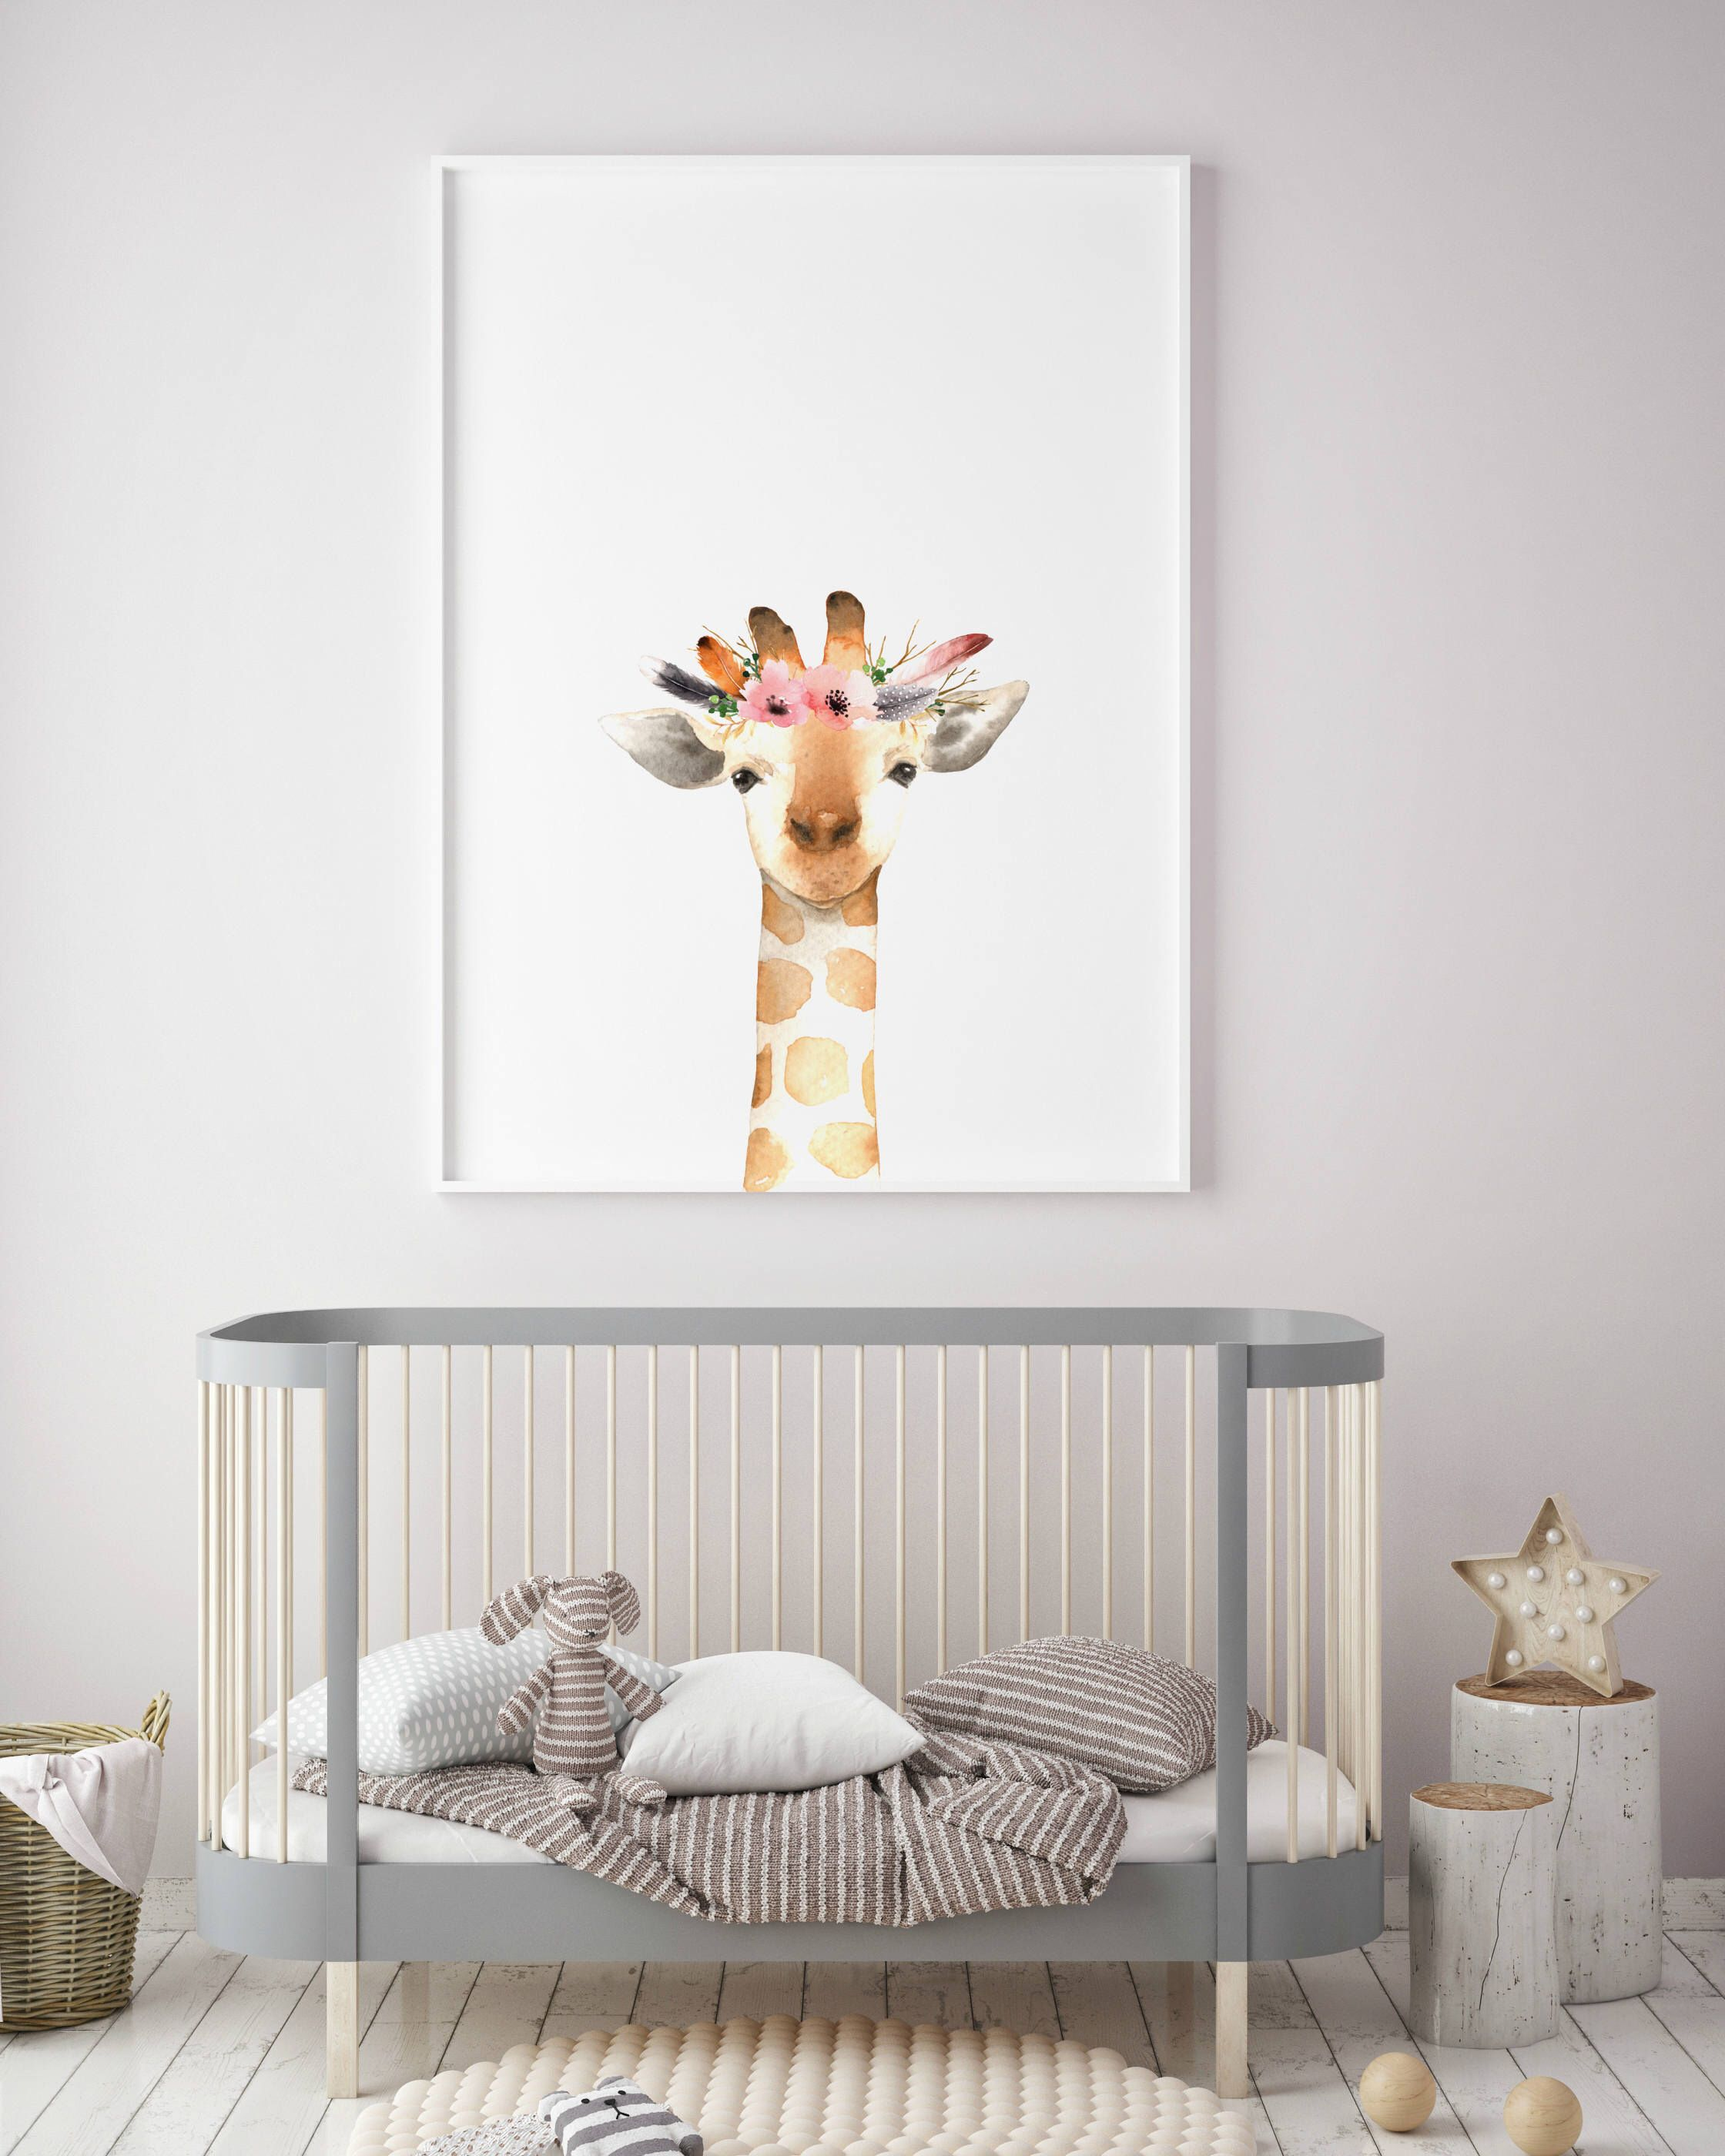 Giraffe animal nursery decor nursery wall art printable art animal prints nursery safari prints giraffe print rabbit print deer print